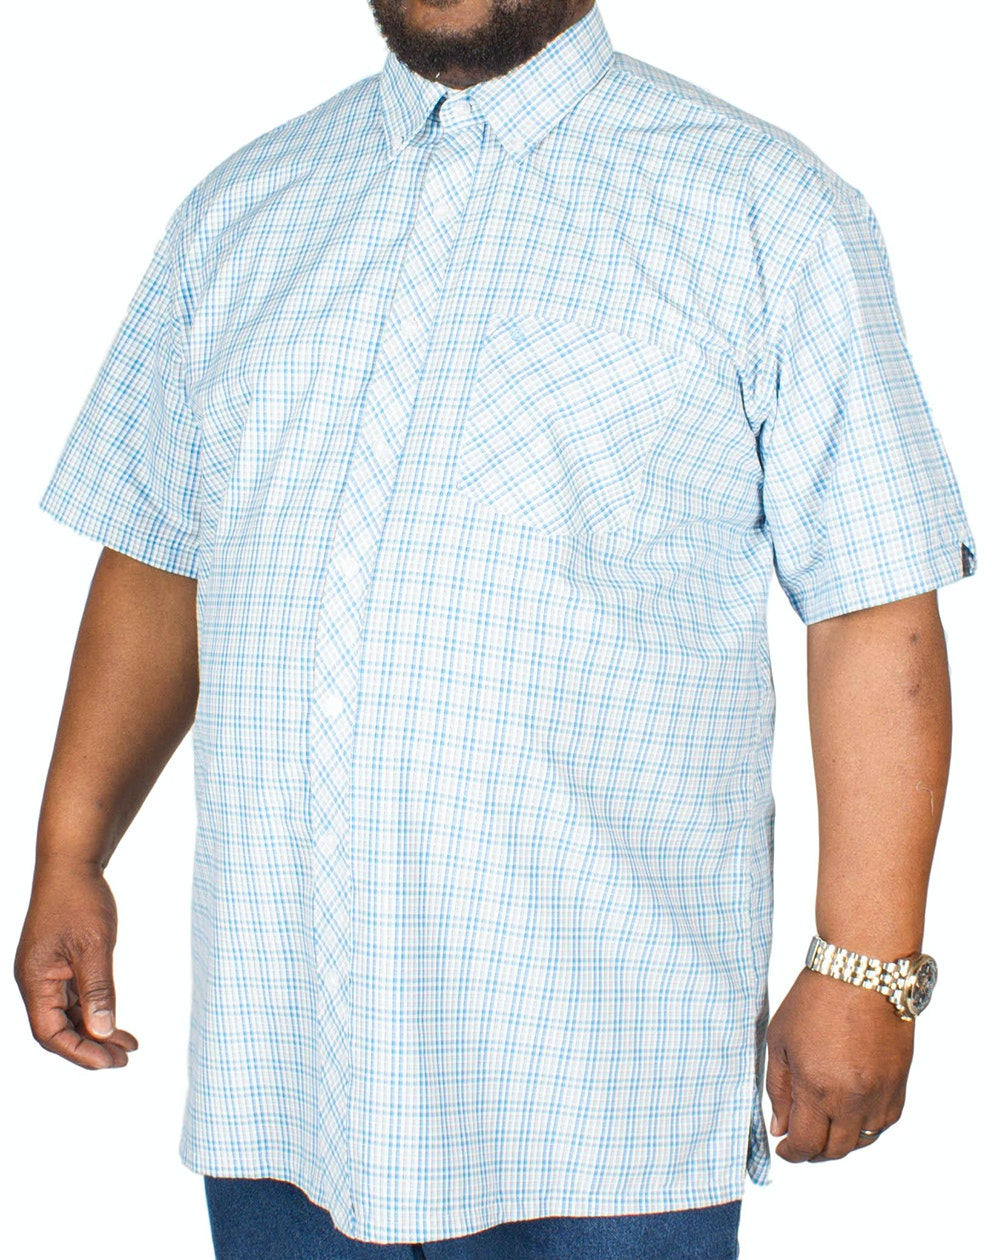 Espionage Short Sleeve Check Shirt Turquoise